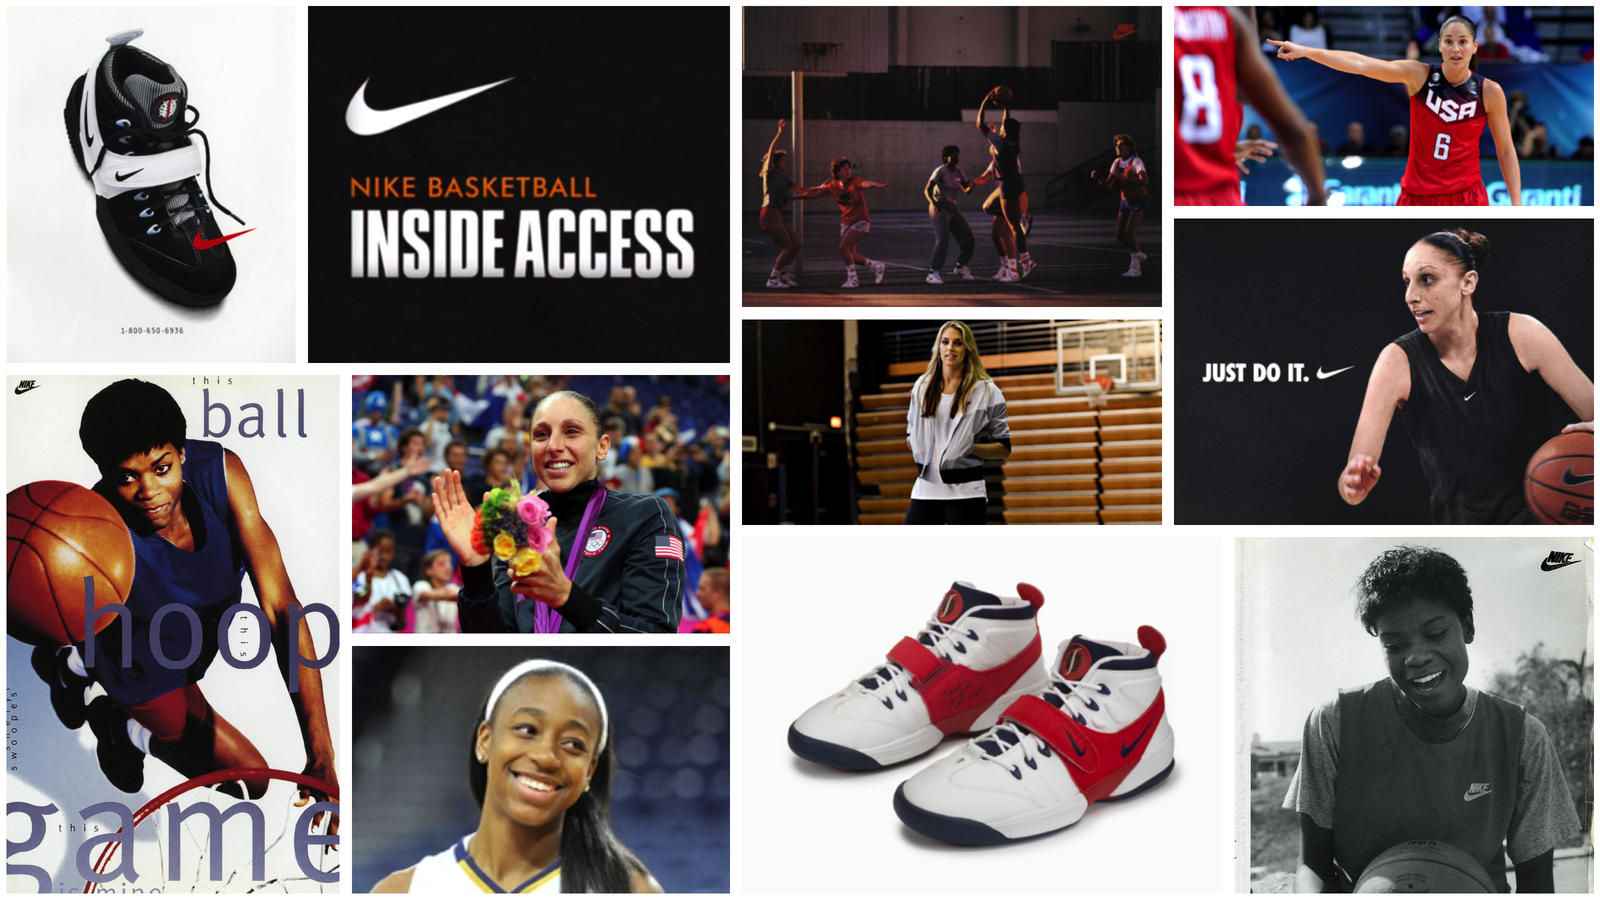 Nike-Basketball-Inside-Access-Collage